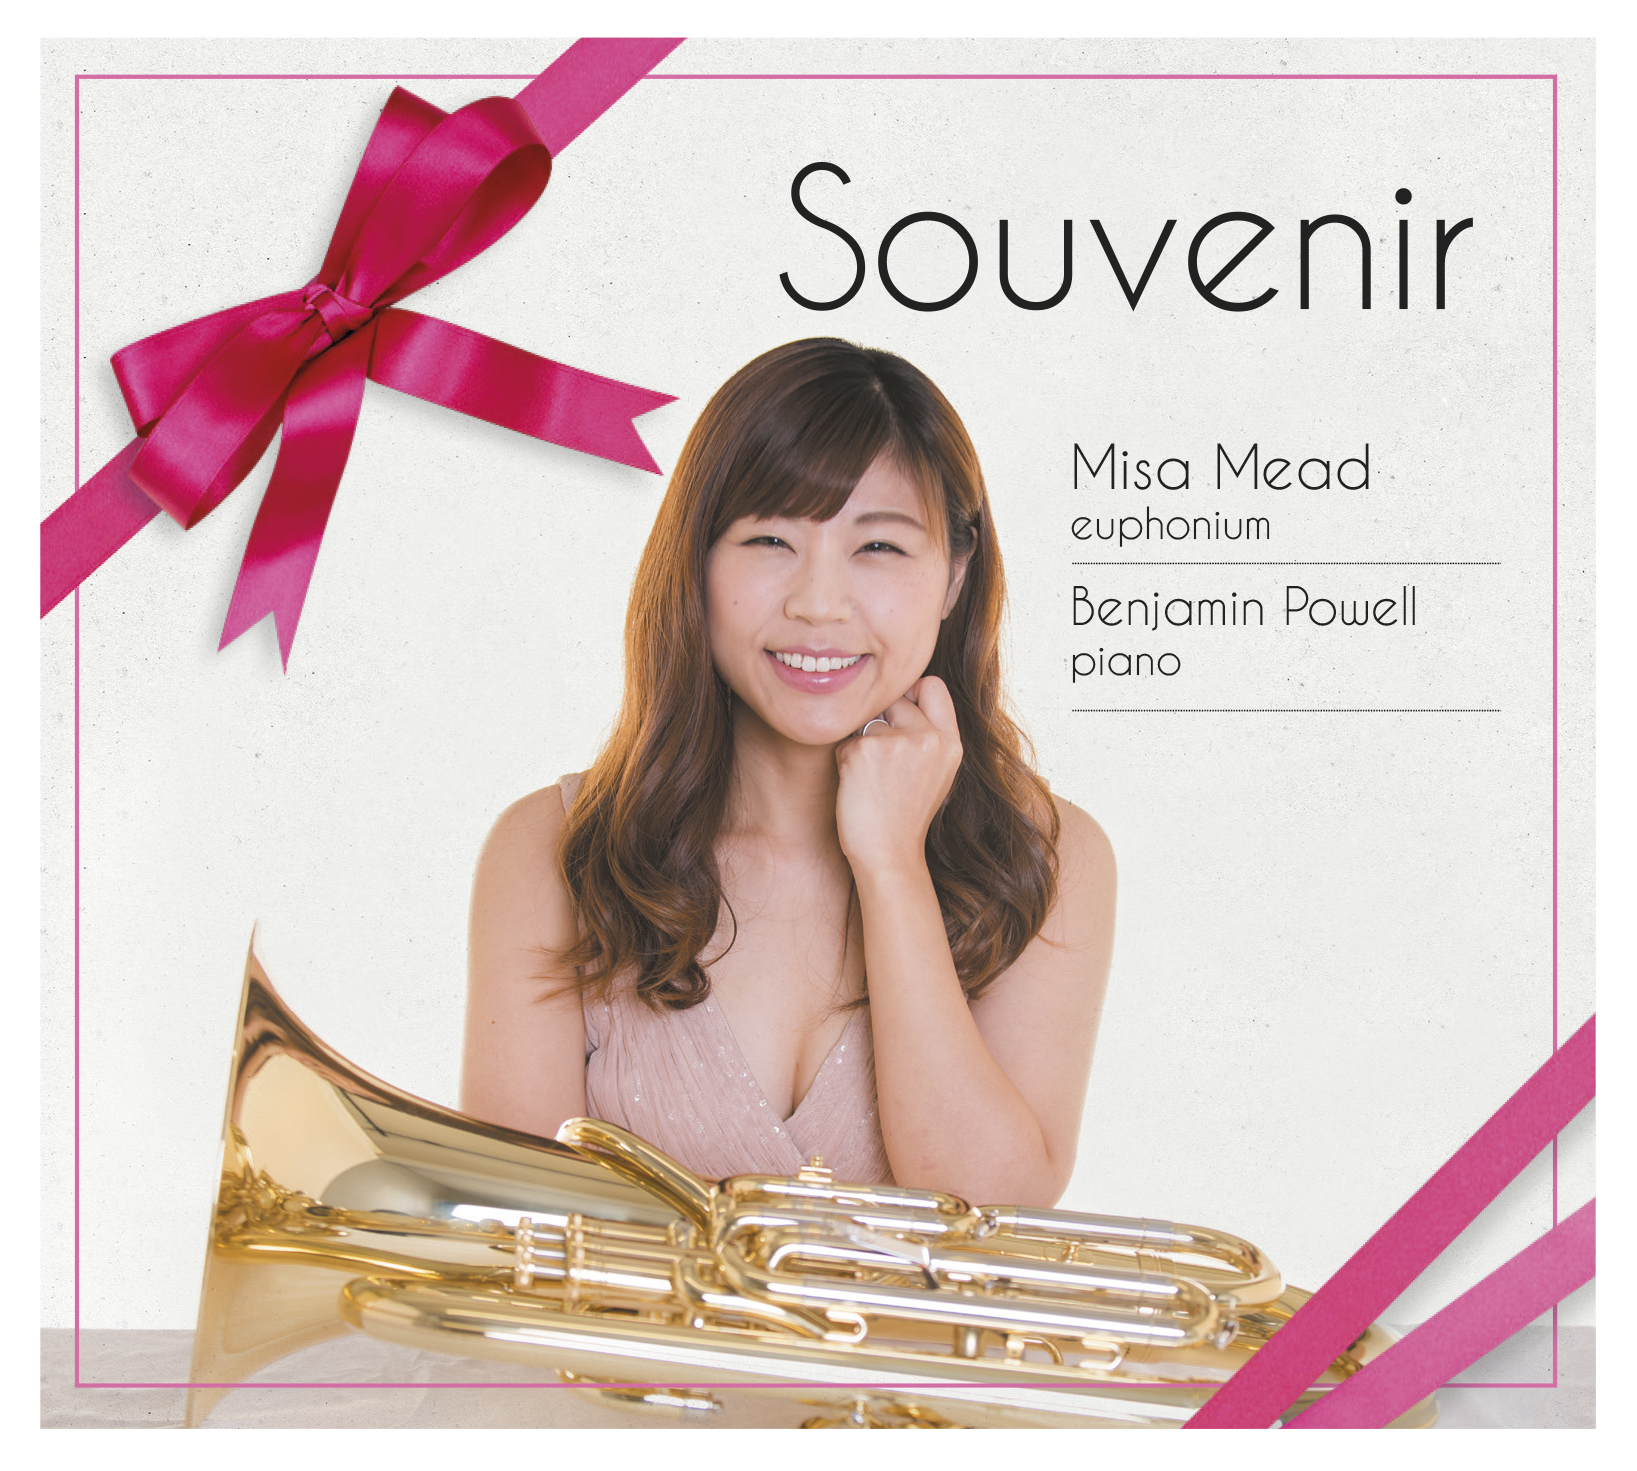 CD - Souvenir - Misa Mead and Benjamin Powell